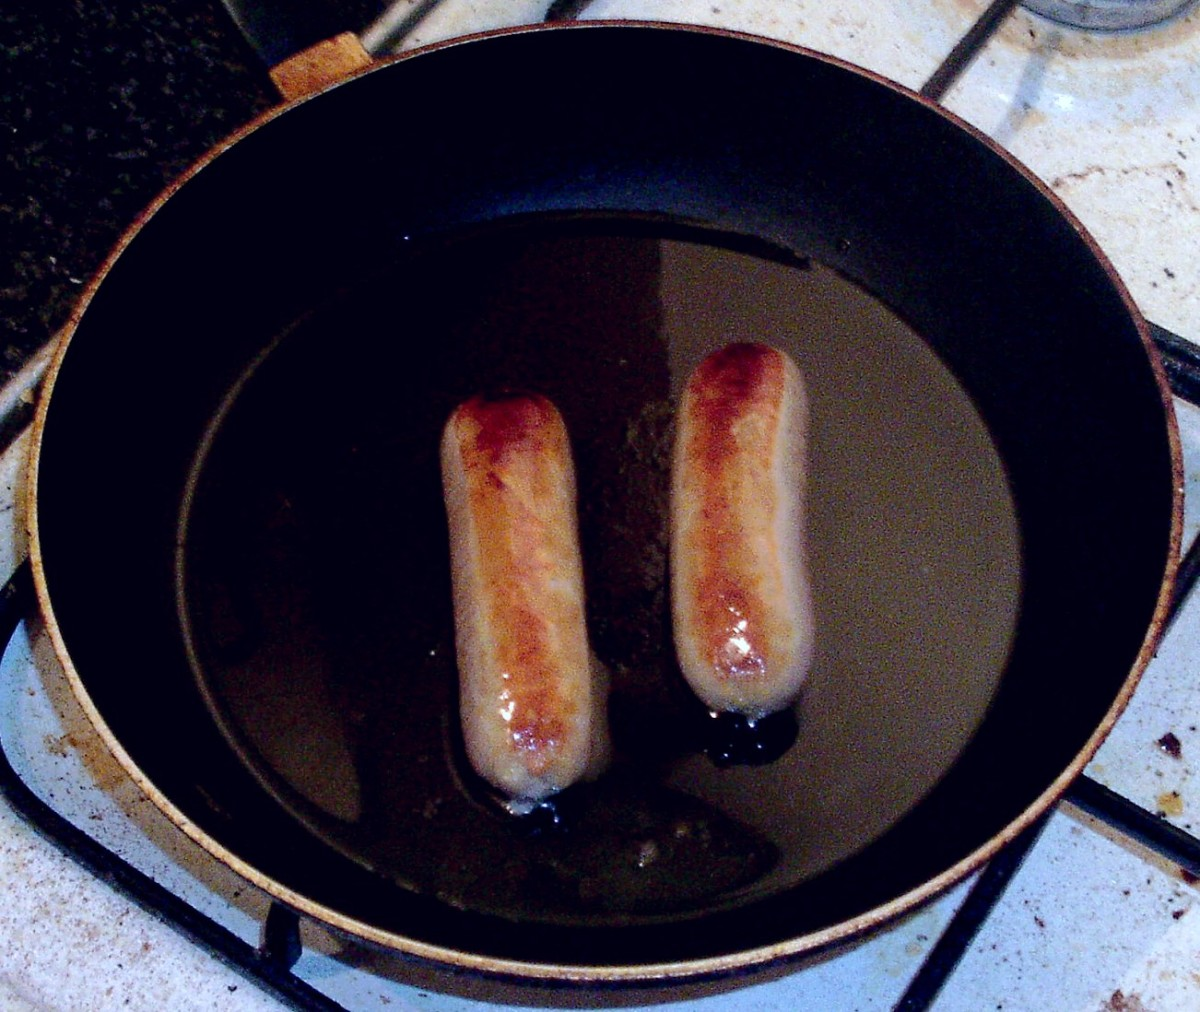 Chicken sausages are turned regularly in the pan as they fry